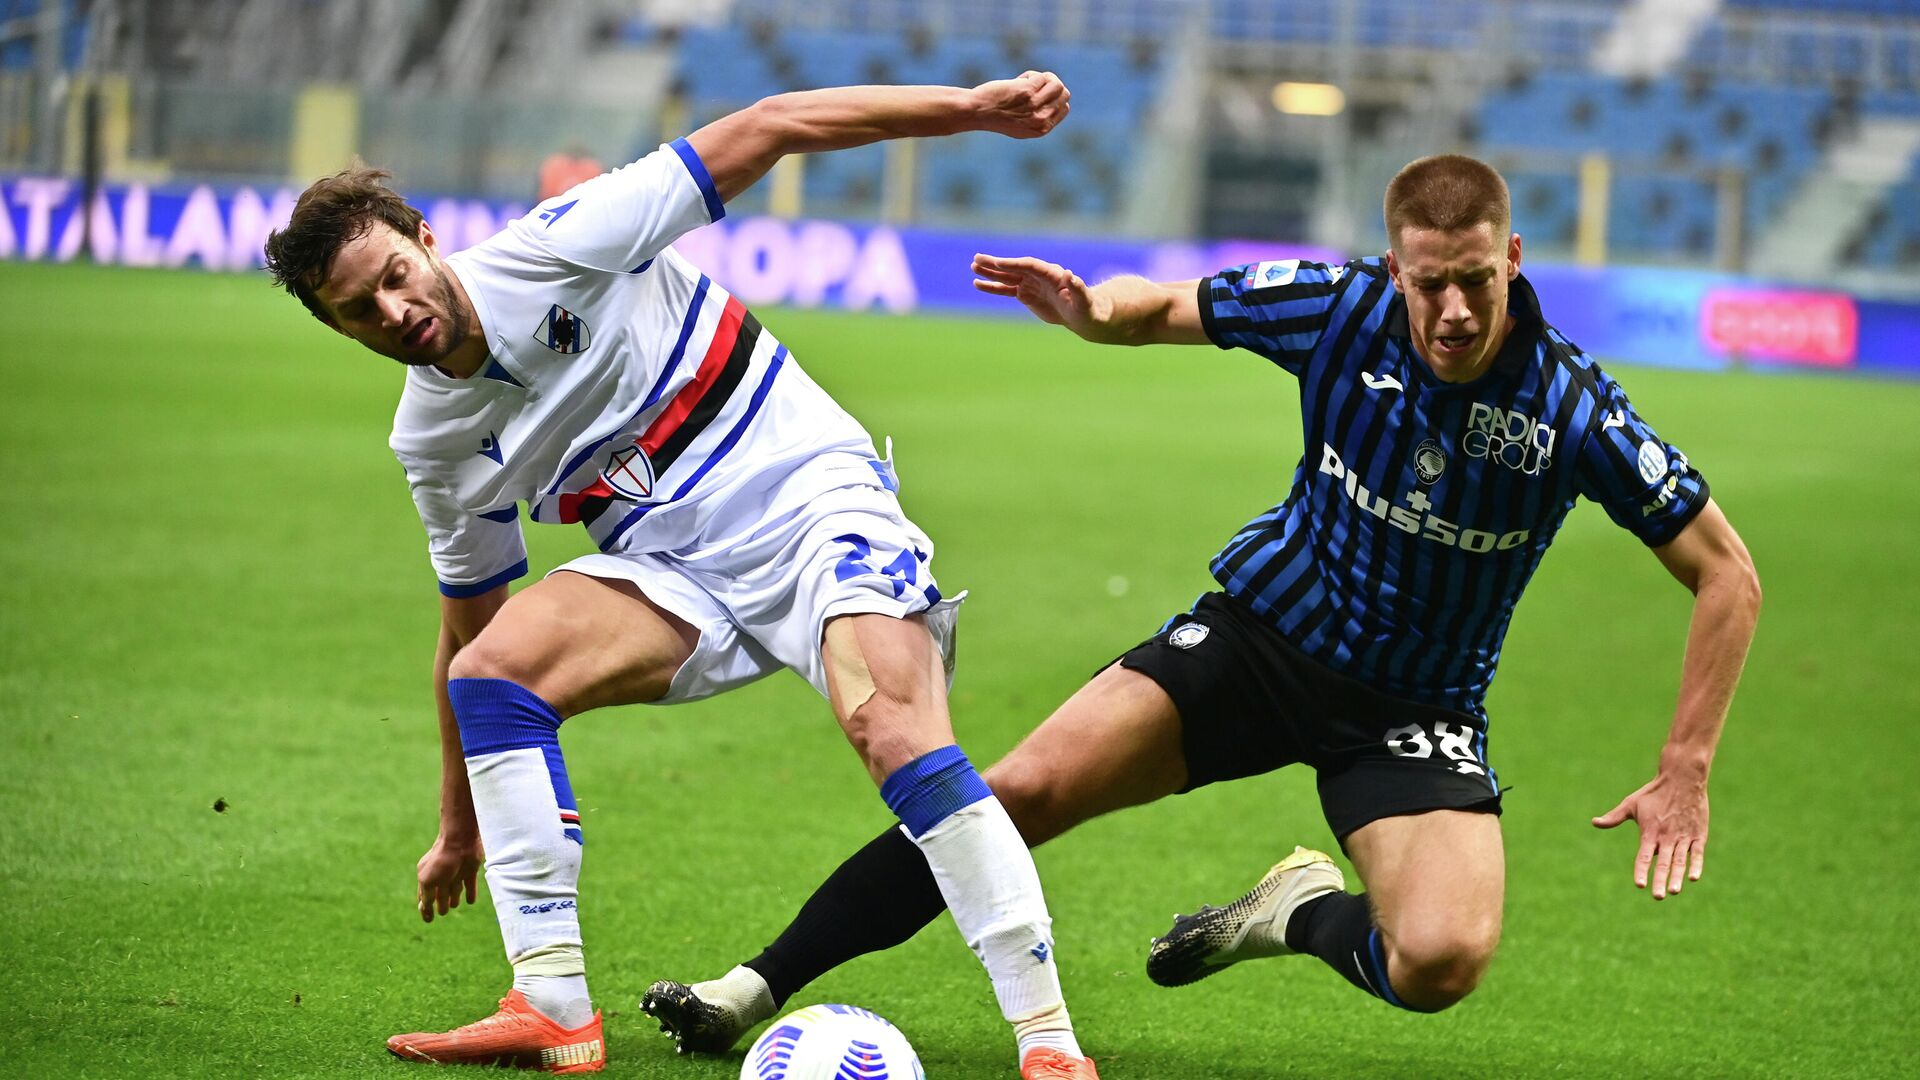 Sampdoria's Polish defender Bartosz Bereszynski (L) fights for the ball with Atalanta's Croatian midfielder Mario Pasalic (R) during the Italian Serie A football match between Atalanta and Sampdoria at the Atleti Azzurri d'Italia stadium in Bergamo on October 24, 2020. (Photo by MIGUEL MEDINA / AFP) - РИА Новости, 1920, 24.10.2020